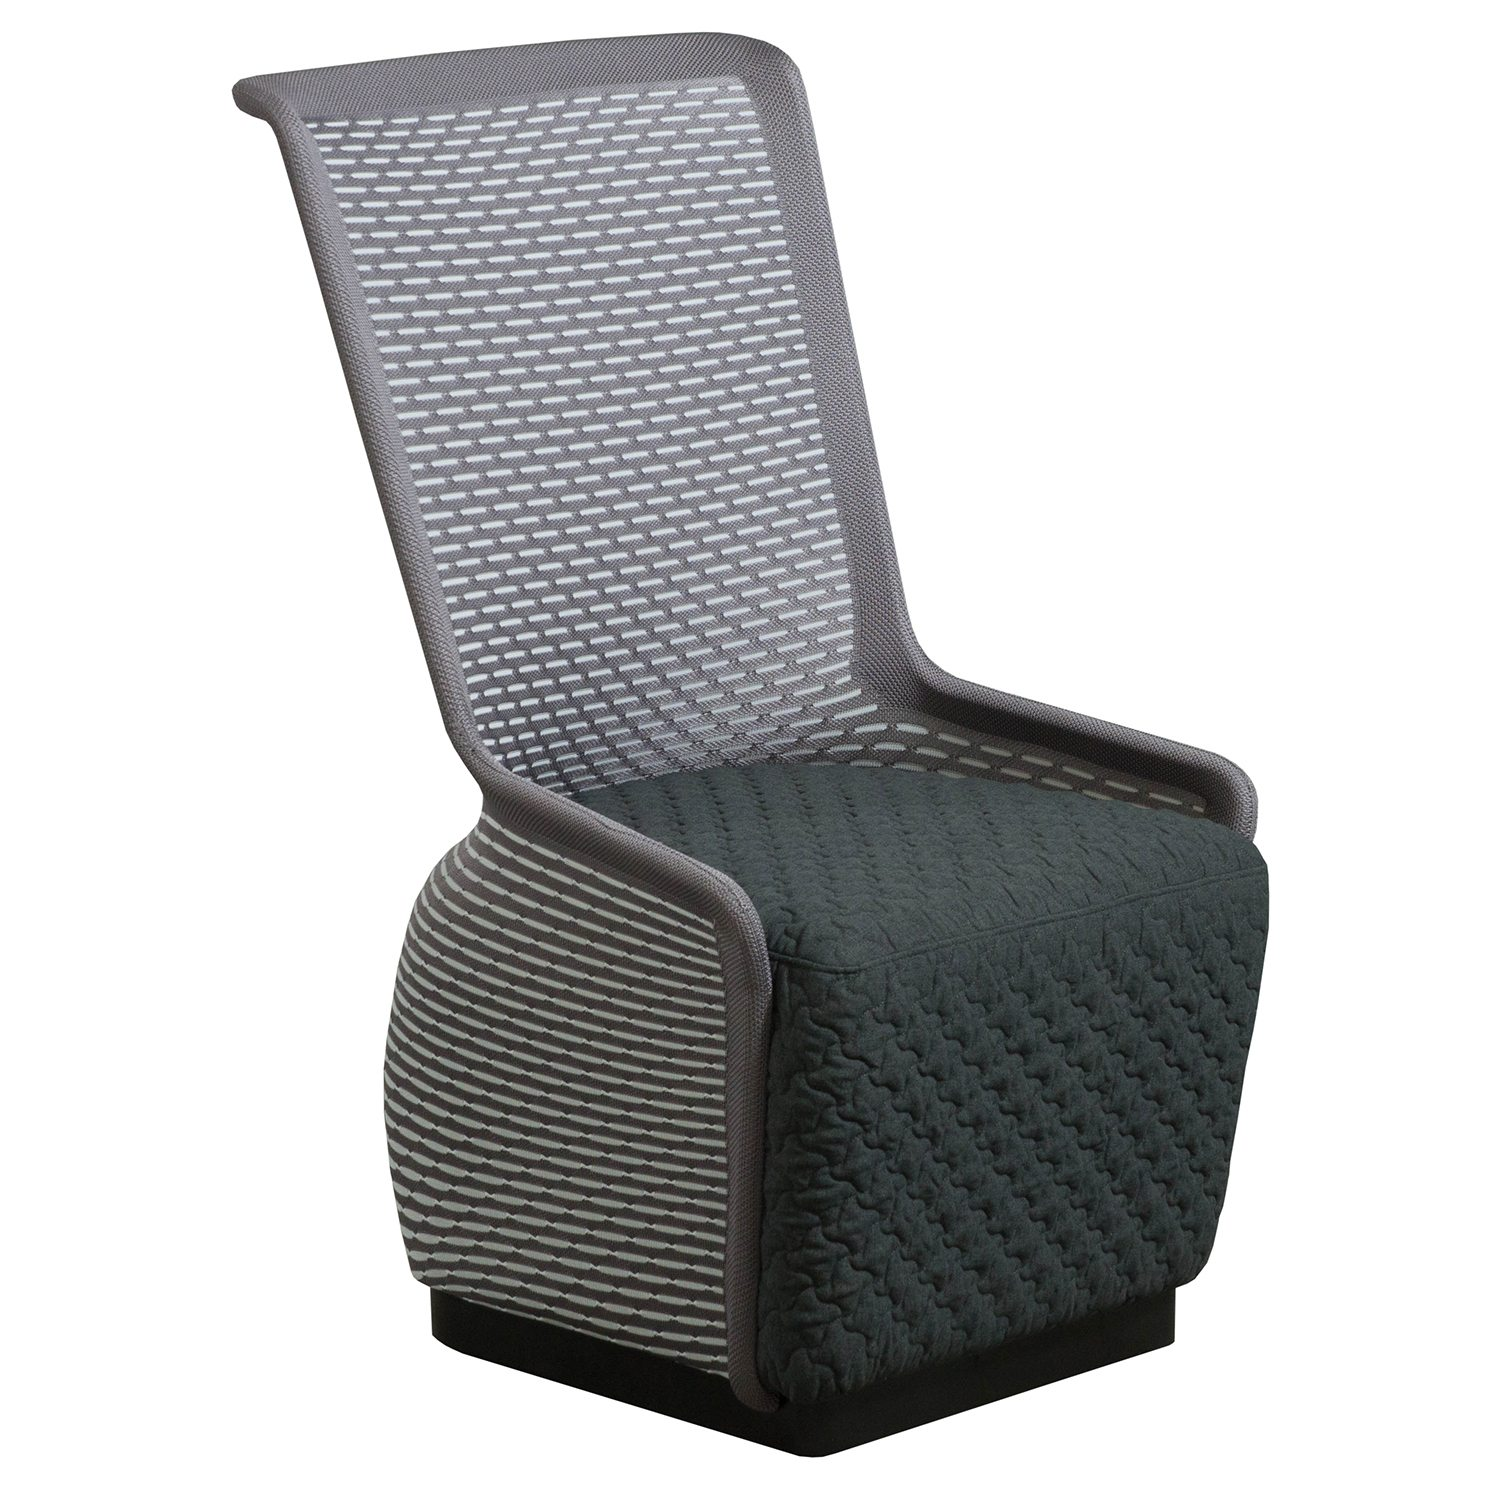 Mesh Lounge Chair Tide Pool By Gosit Modern Mesh Lounge Chair Gray